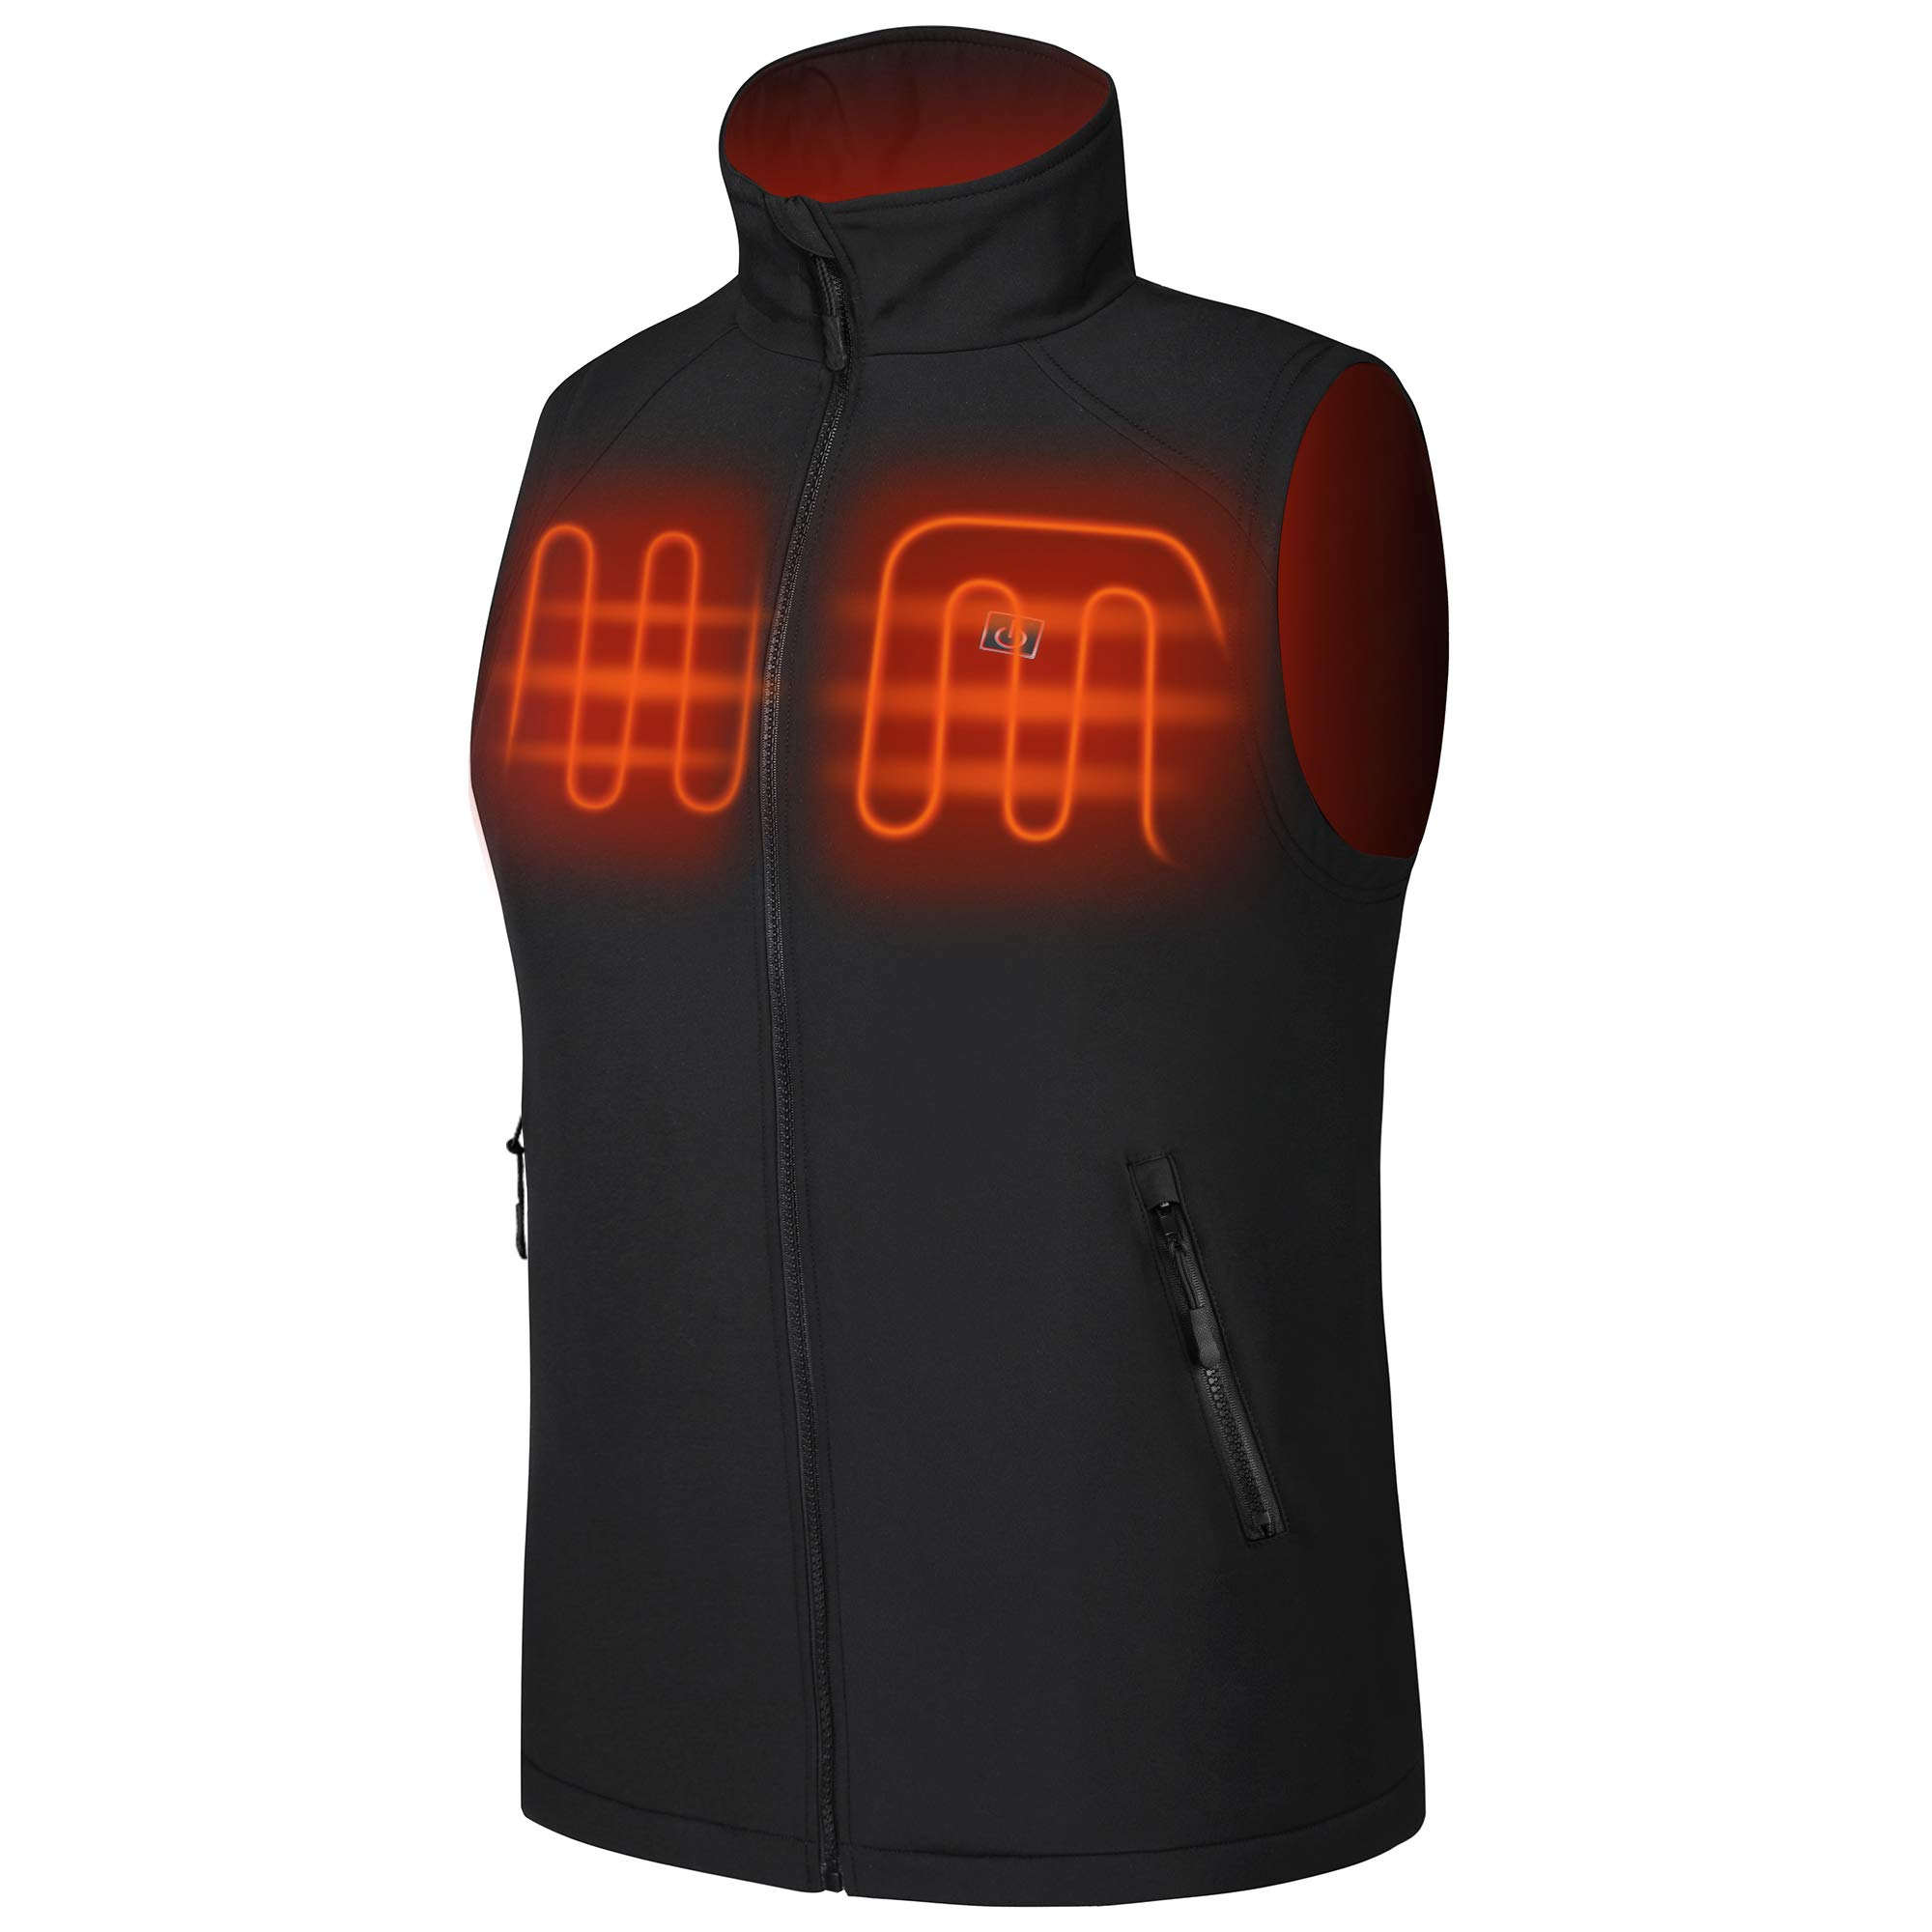 NORA TWIPS USB Heated Vest Electric 5V Body Warmer Vest for Men and Women Black by NORA TWIPS